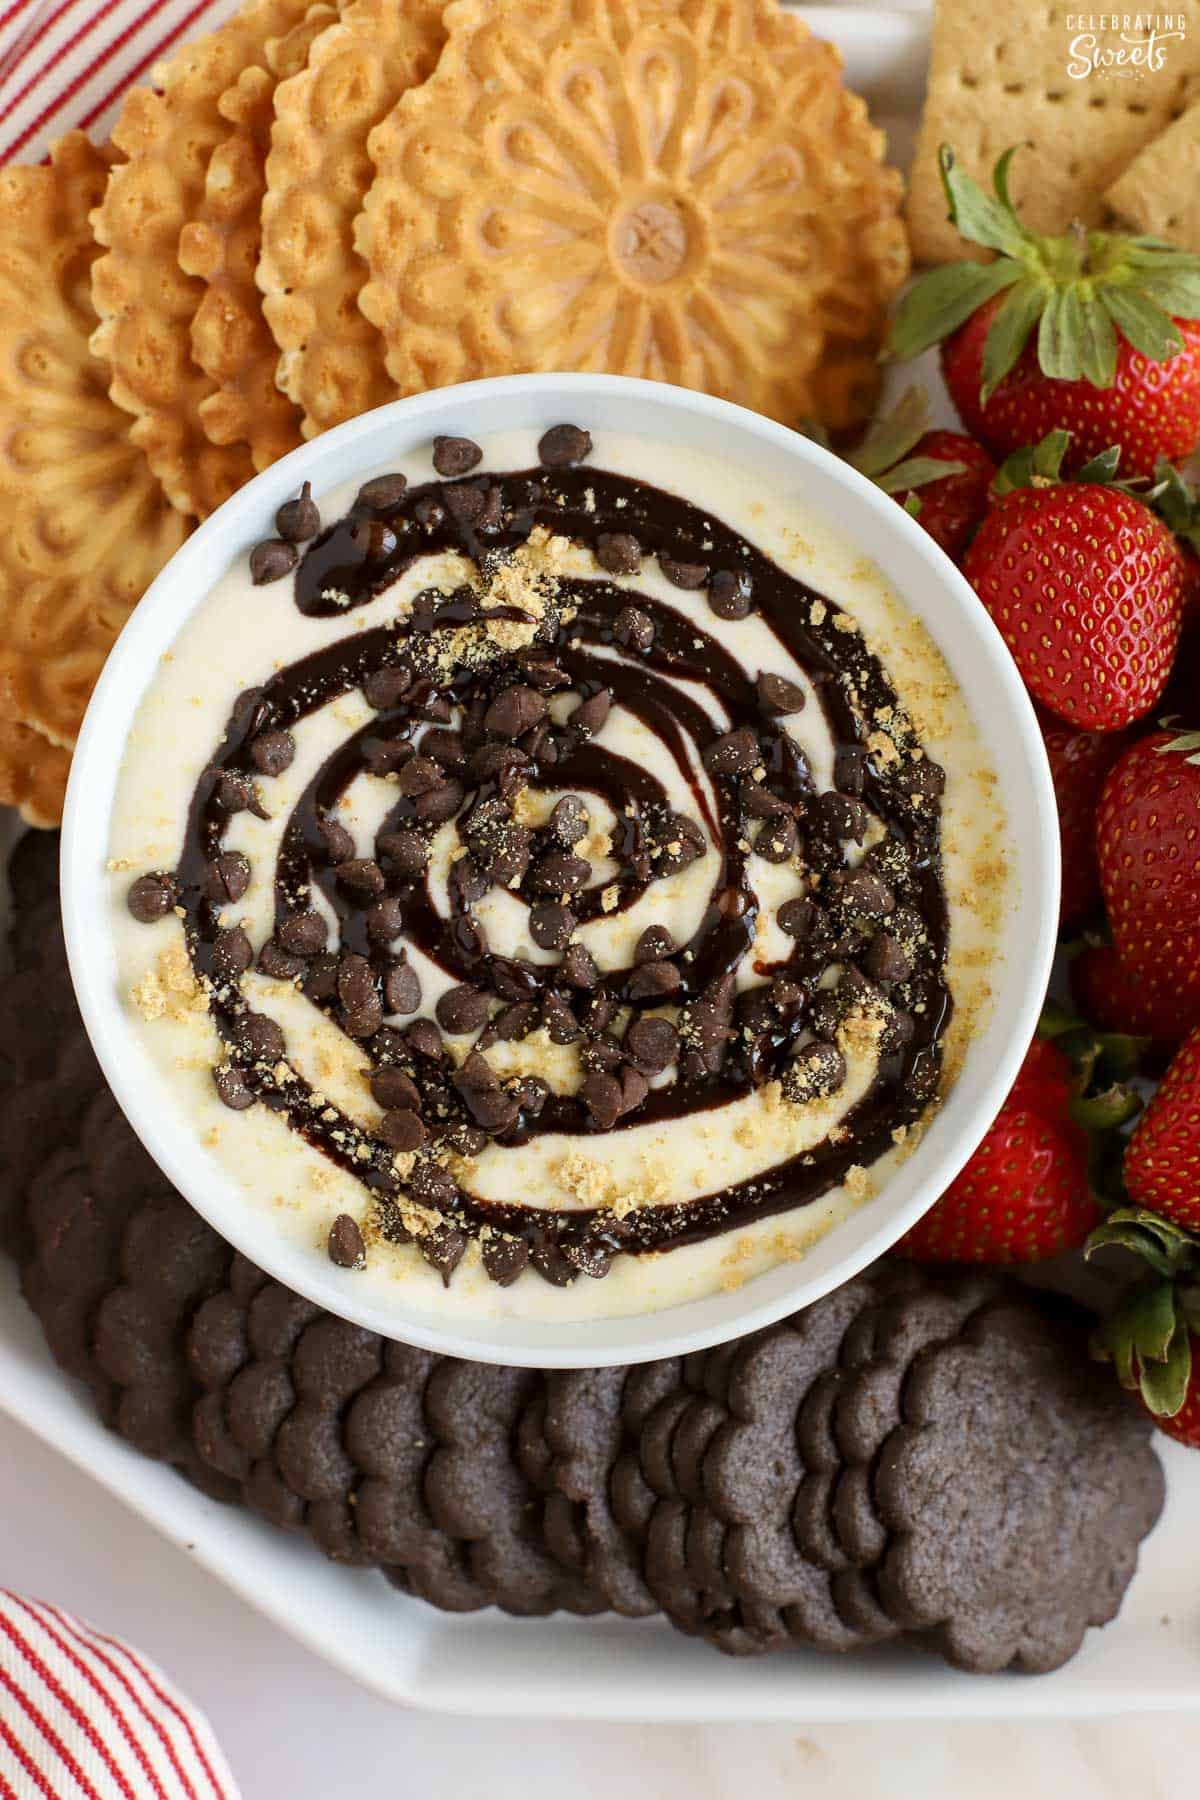 Cheesecake dip topped with chocolate swirls and chocolate chips